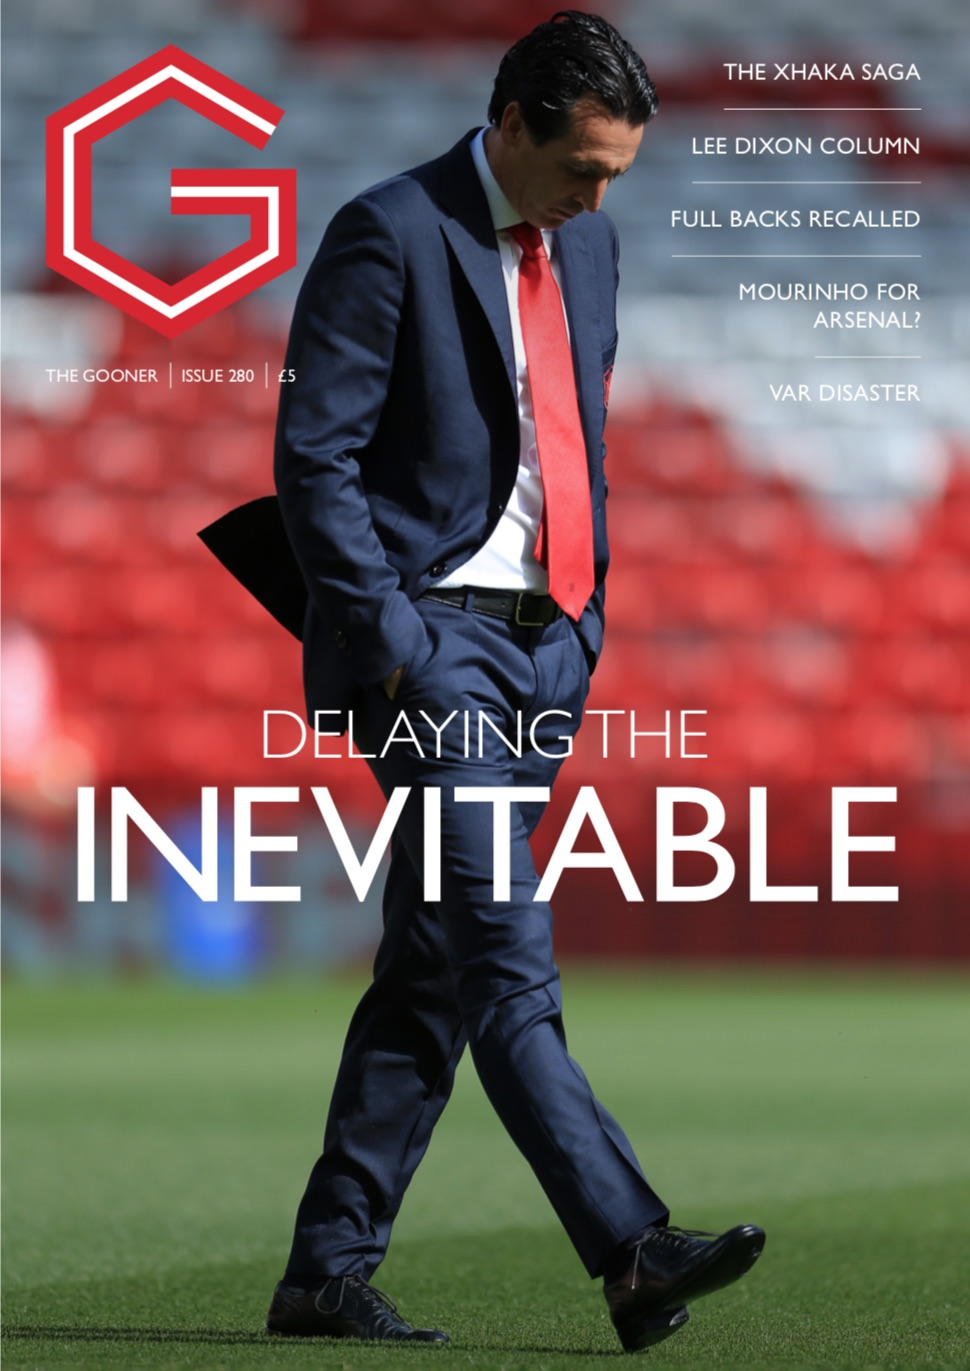 Current Edition – The Gooner Issue 280 (UK)